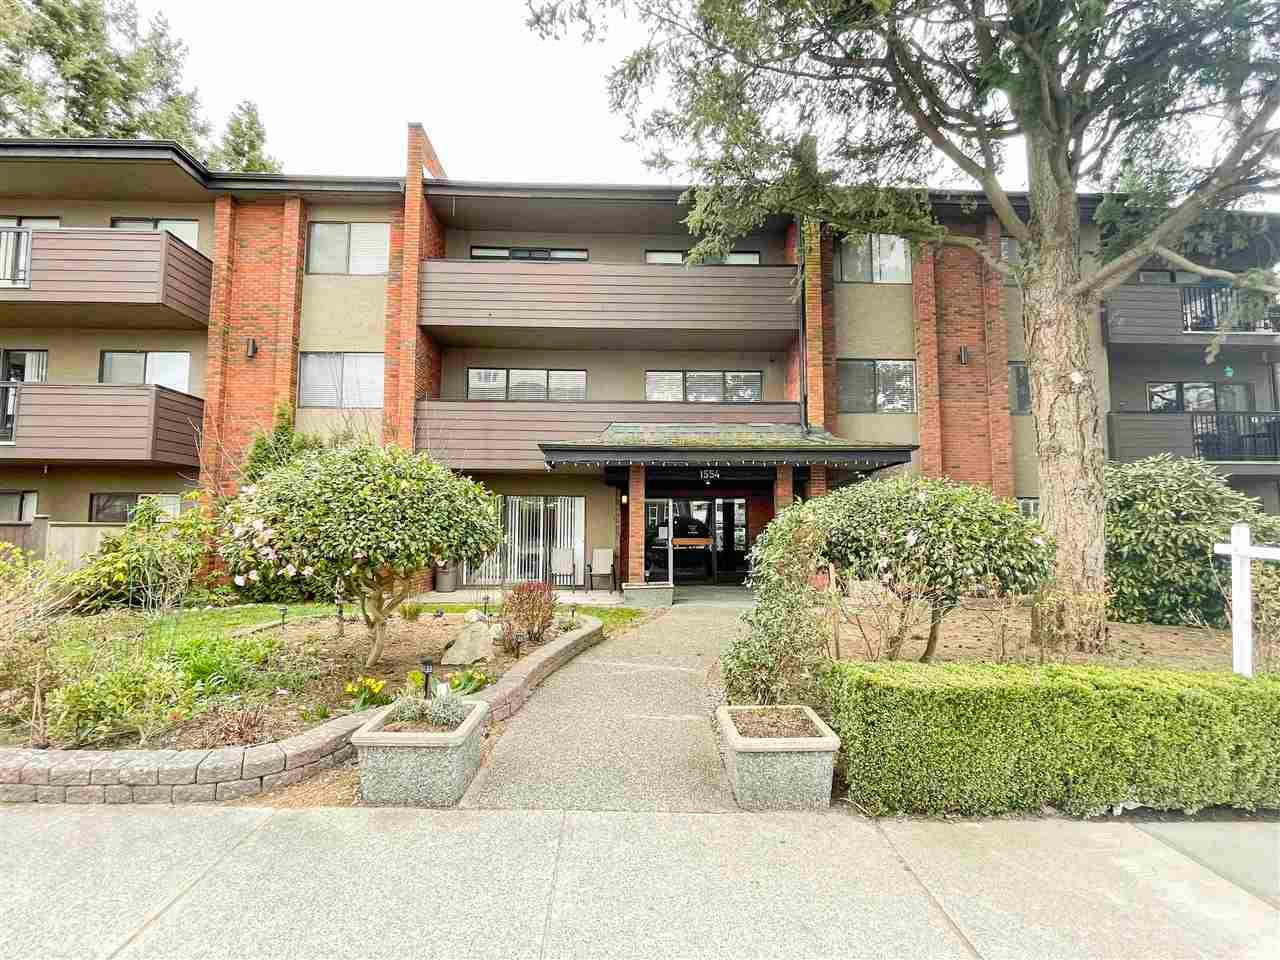 304 1554 GEORGE STREET - White Rock Apartment/Condo for sale, 1 Bedroom (R2573966) - #1